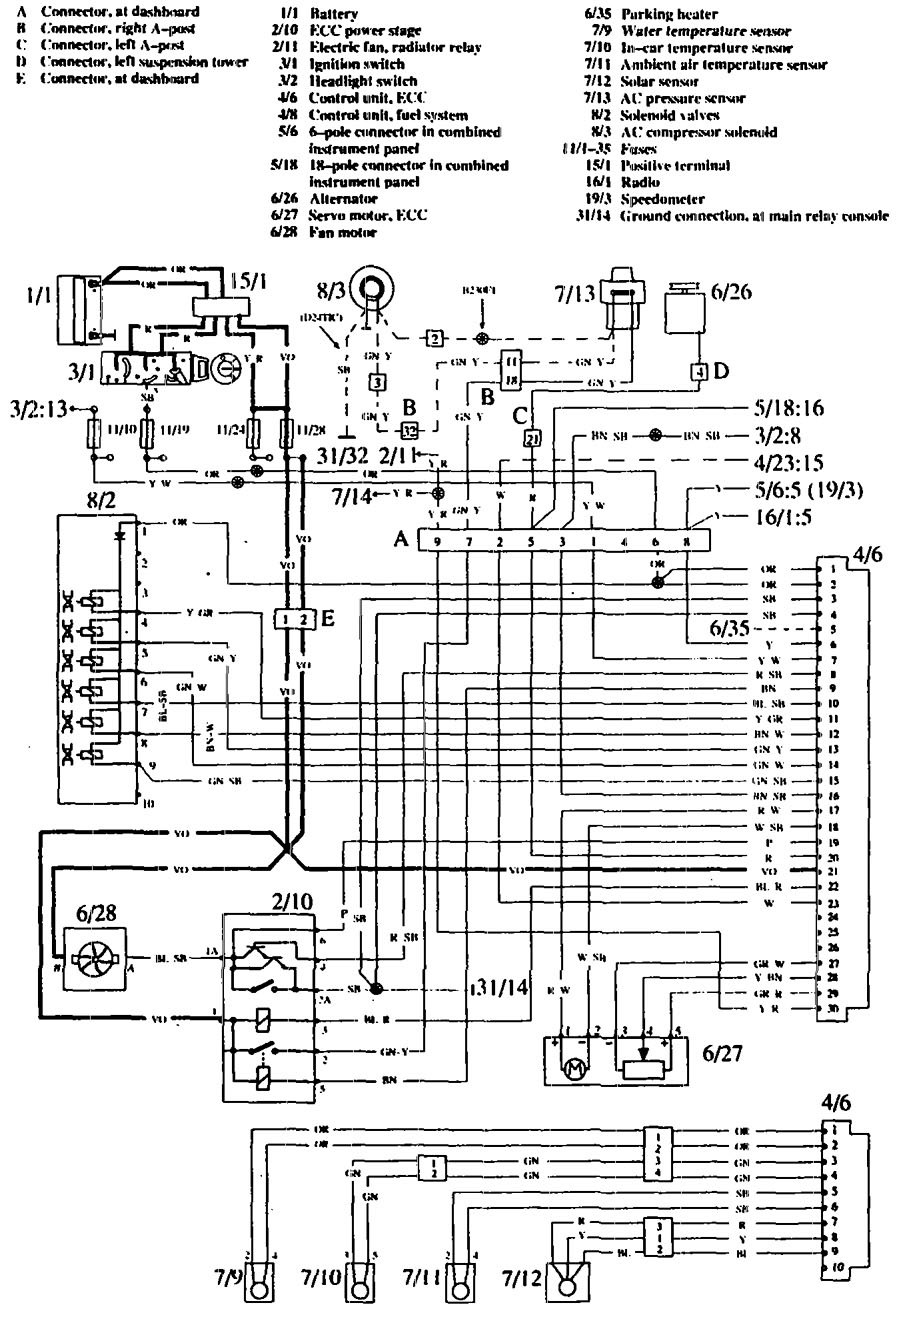 Volvo 740 Stereo Wiring Diagram Ford F 350 Stereo Wiring